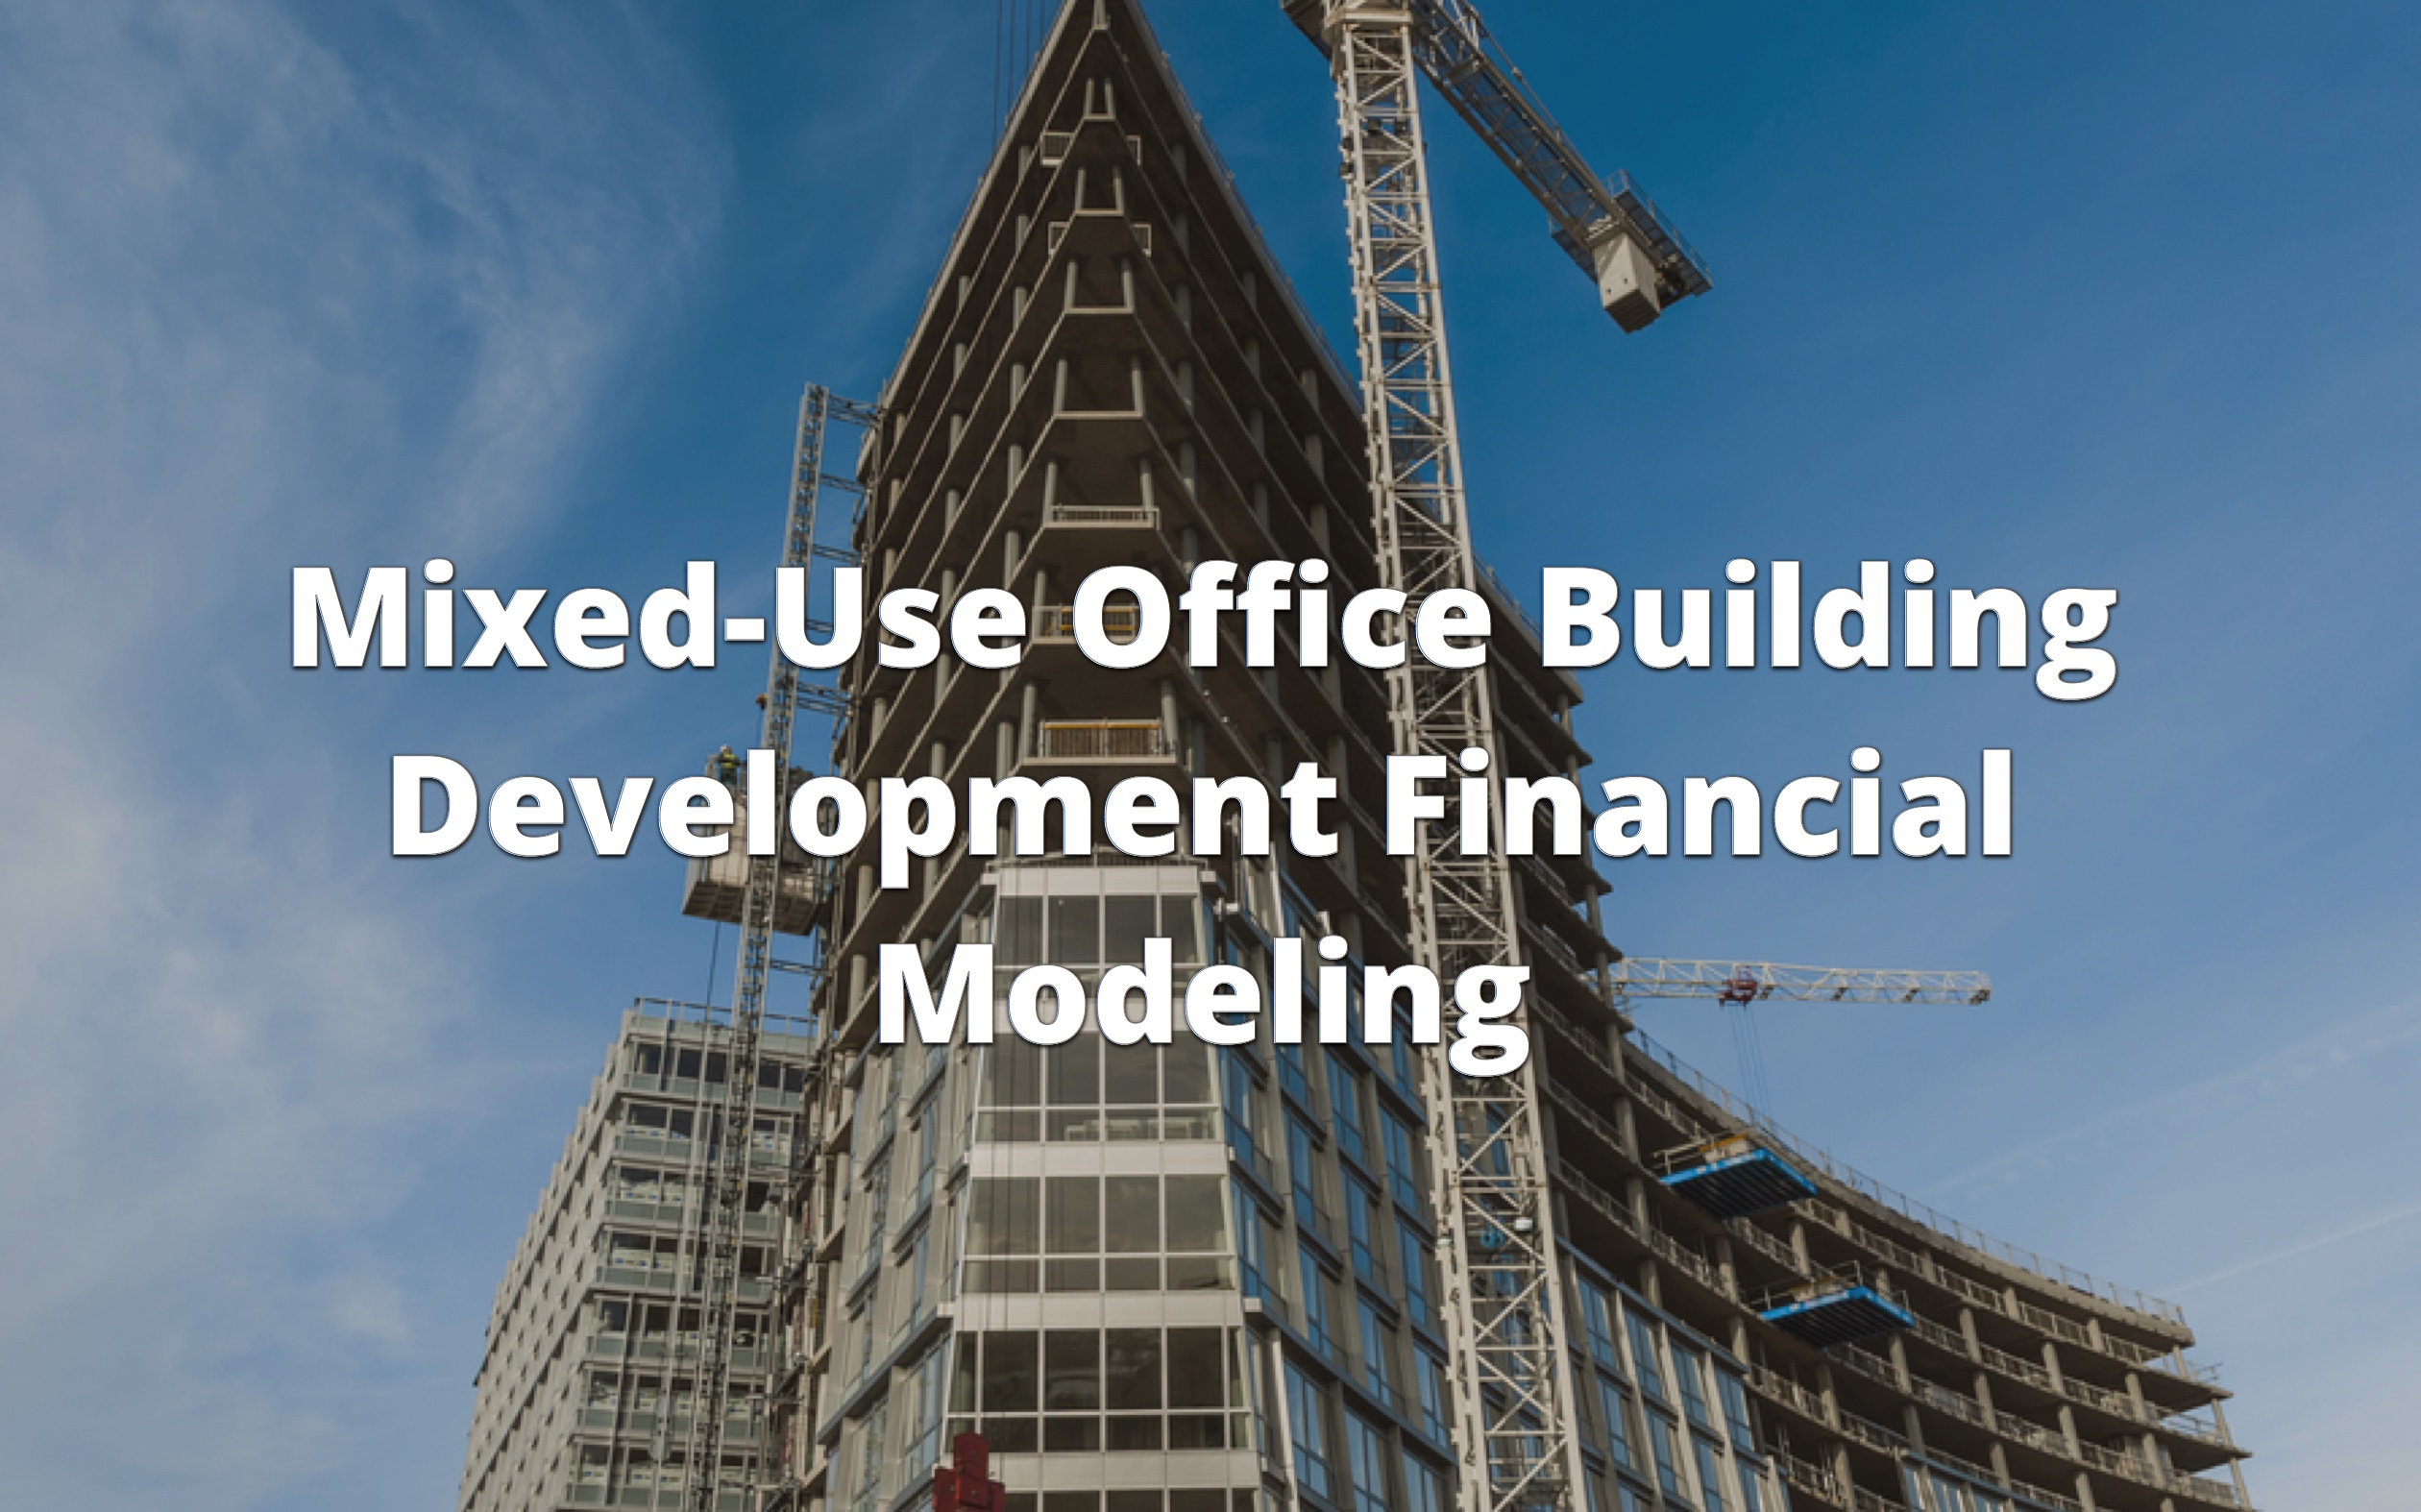 Mixed Use Office Building Development Financial Modeling Course